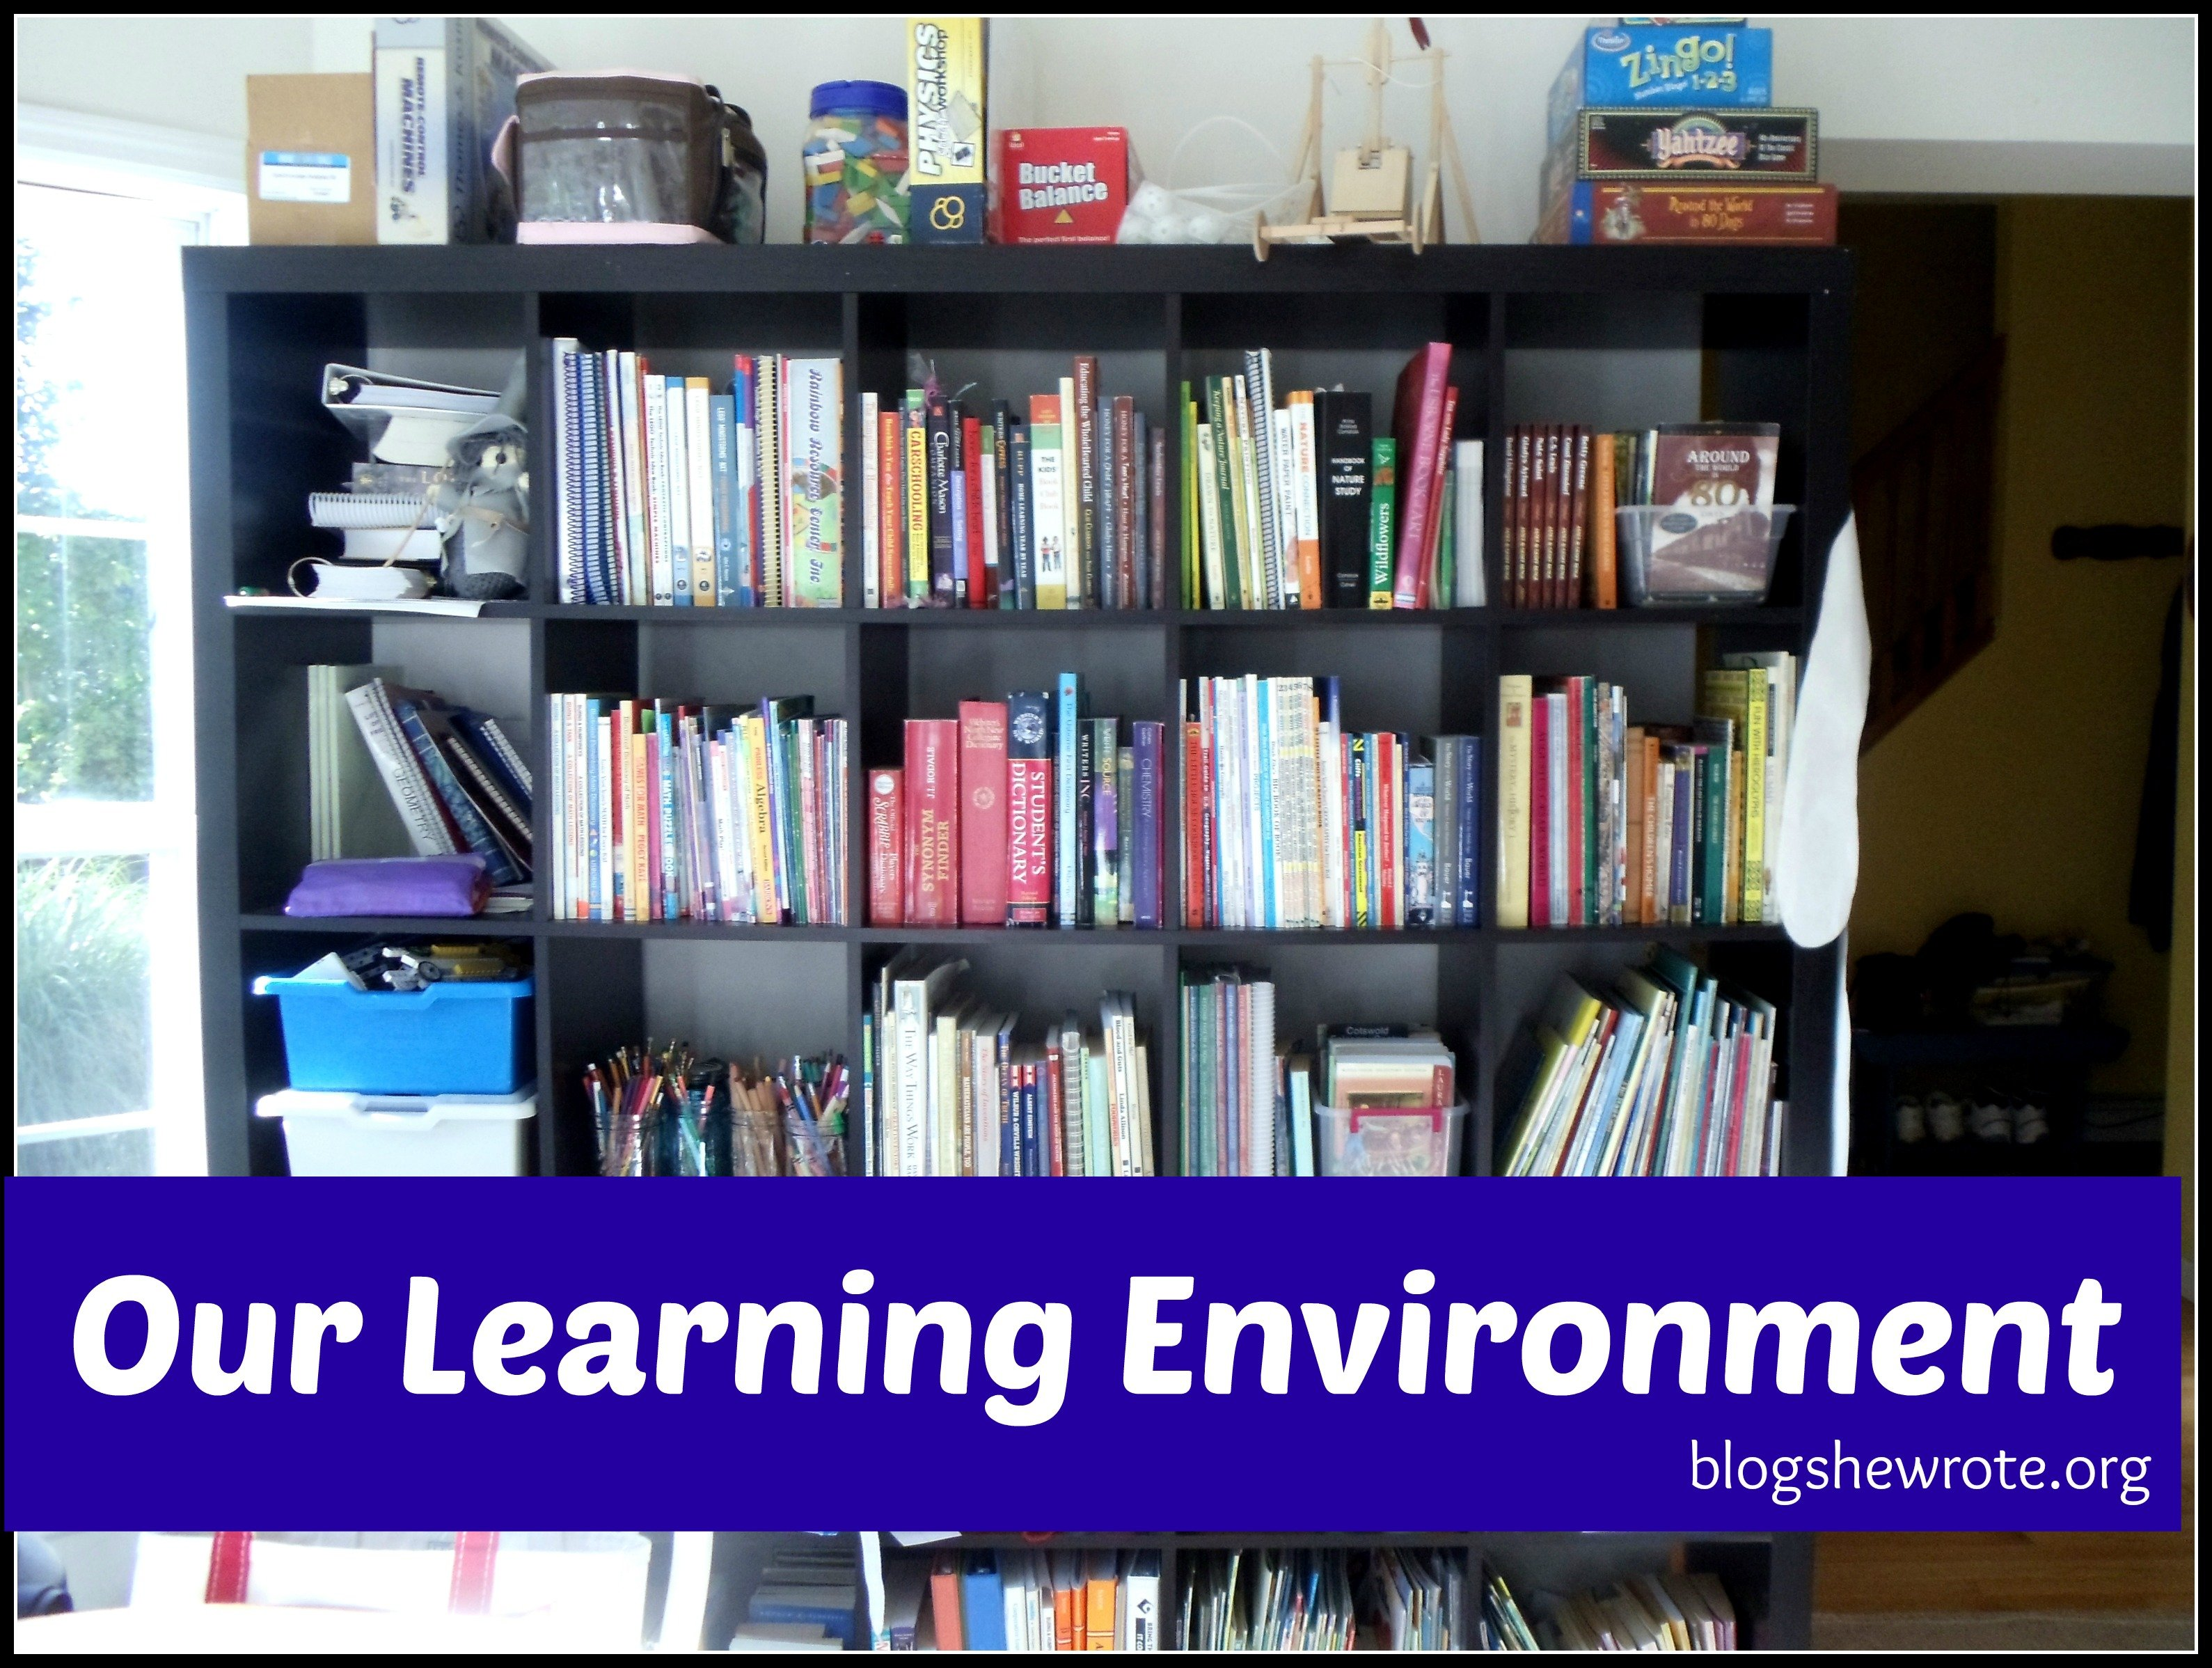 Blog, She Wrote: Our Learning Environment